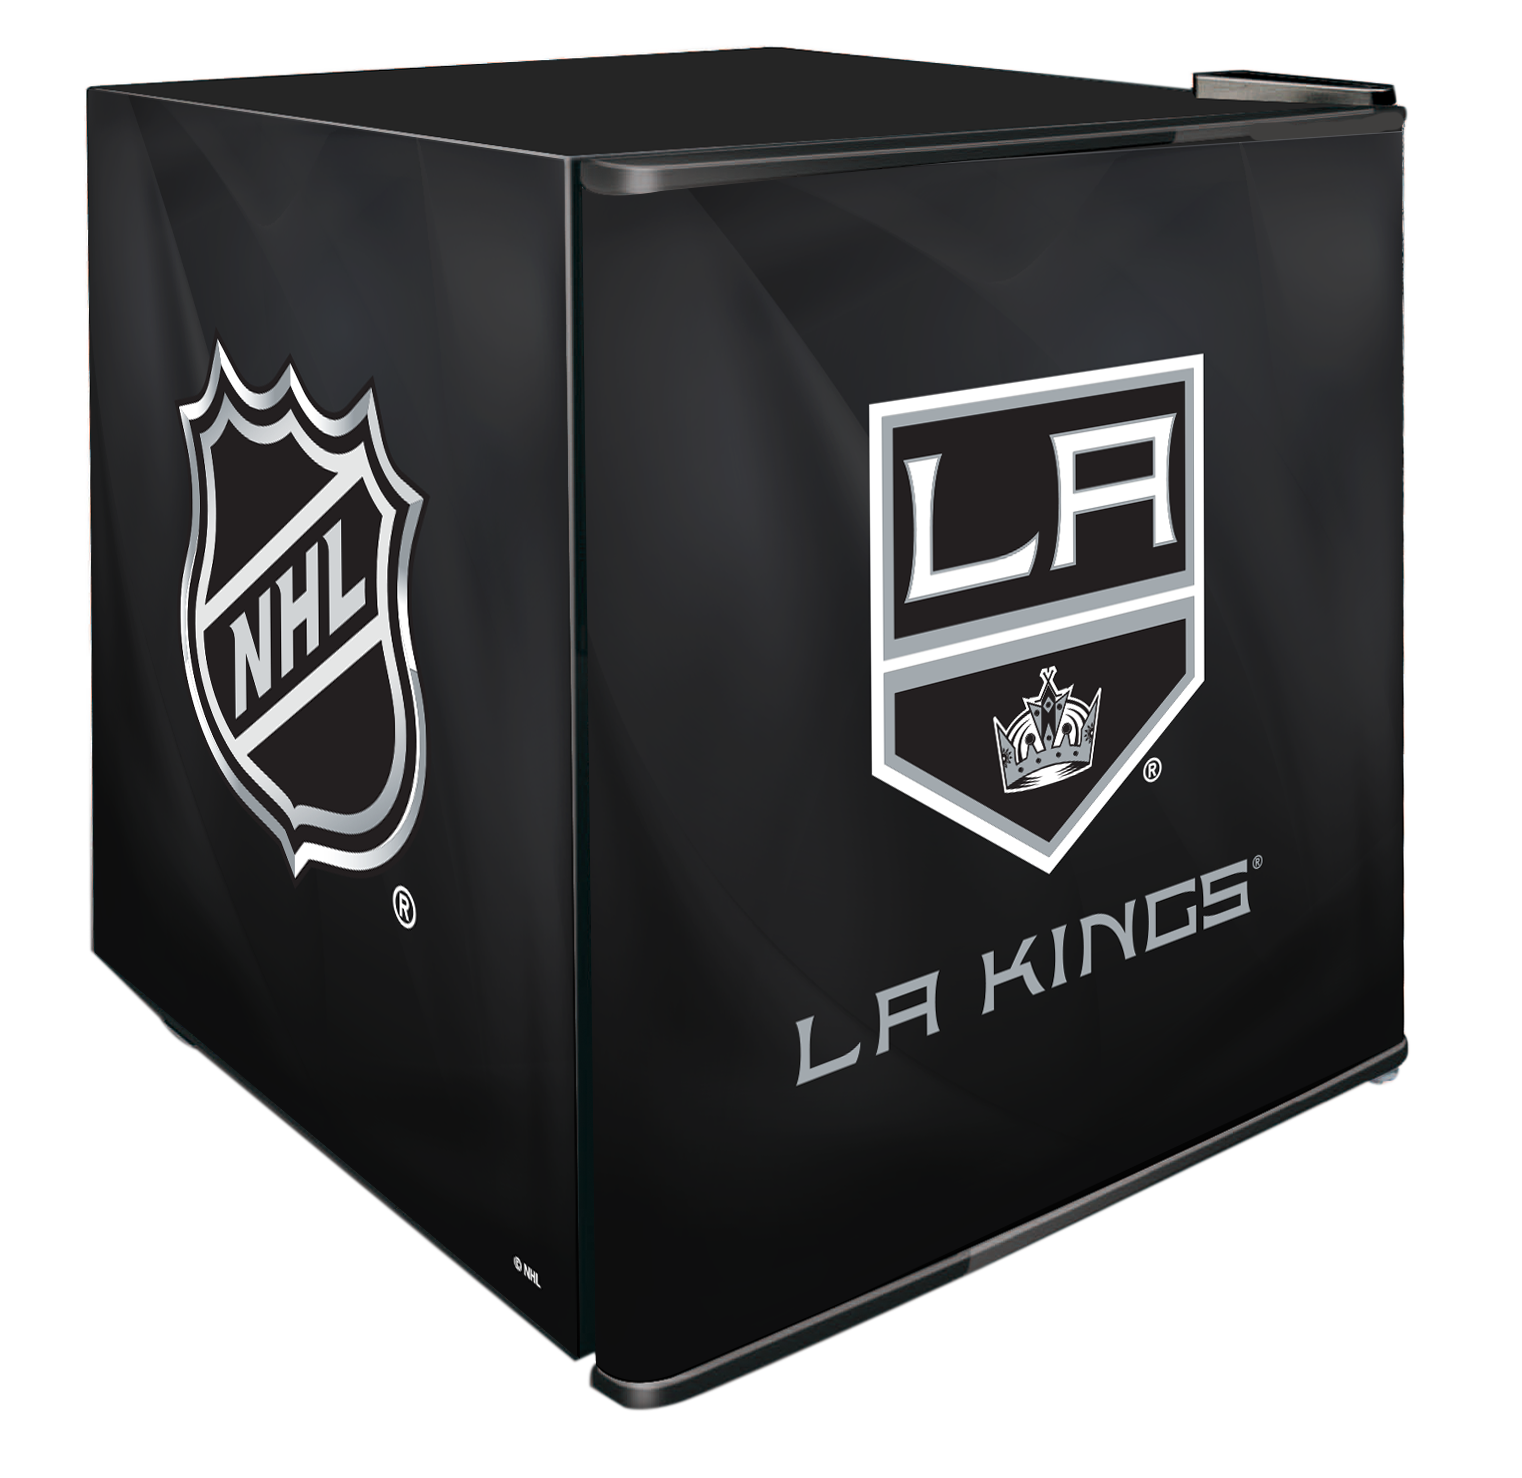 NHL Solid Door Refrigerated Beverage Center 1.8 cu ft - LA Kings